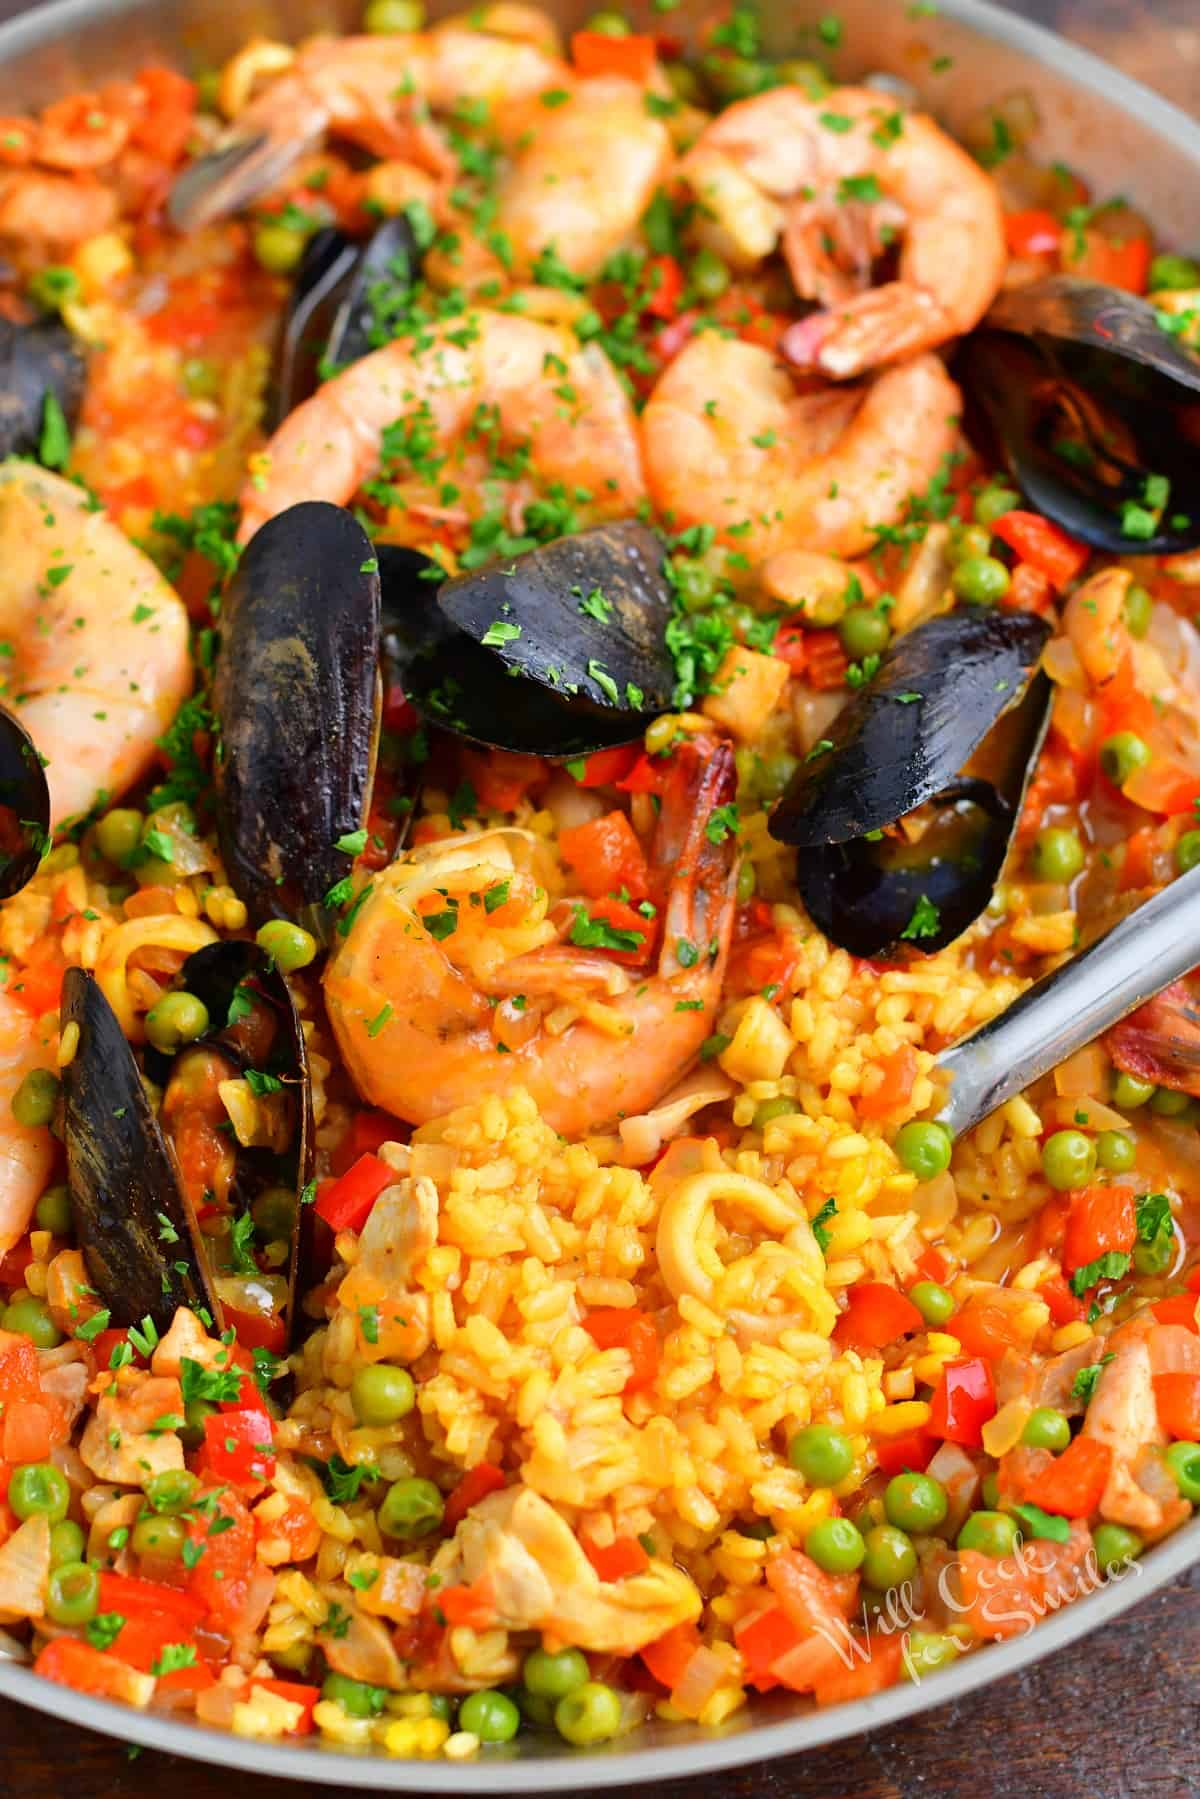 A serving spoon is in the process of removing a serving of paella from the pan.